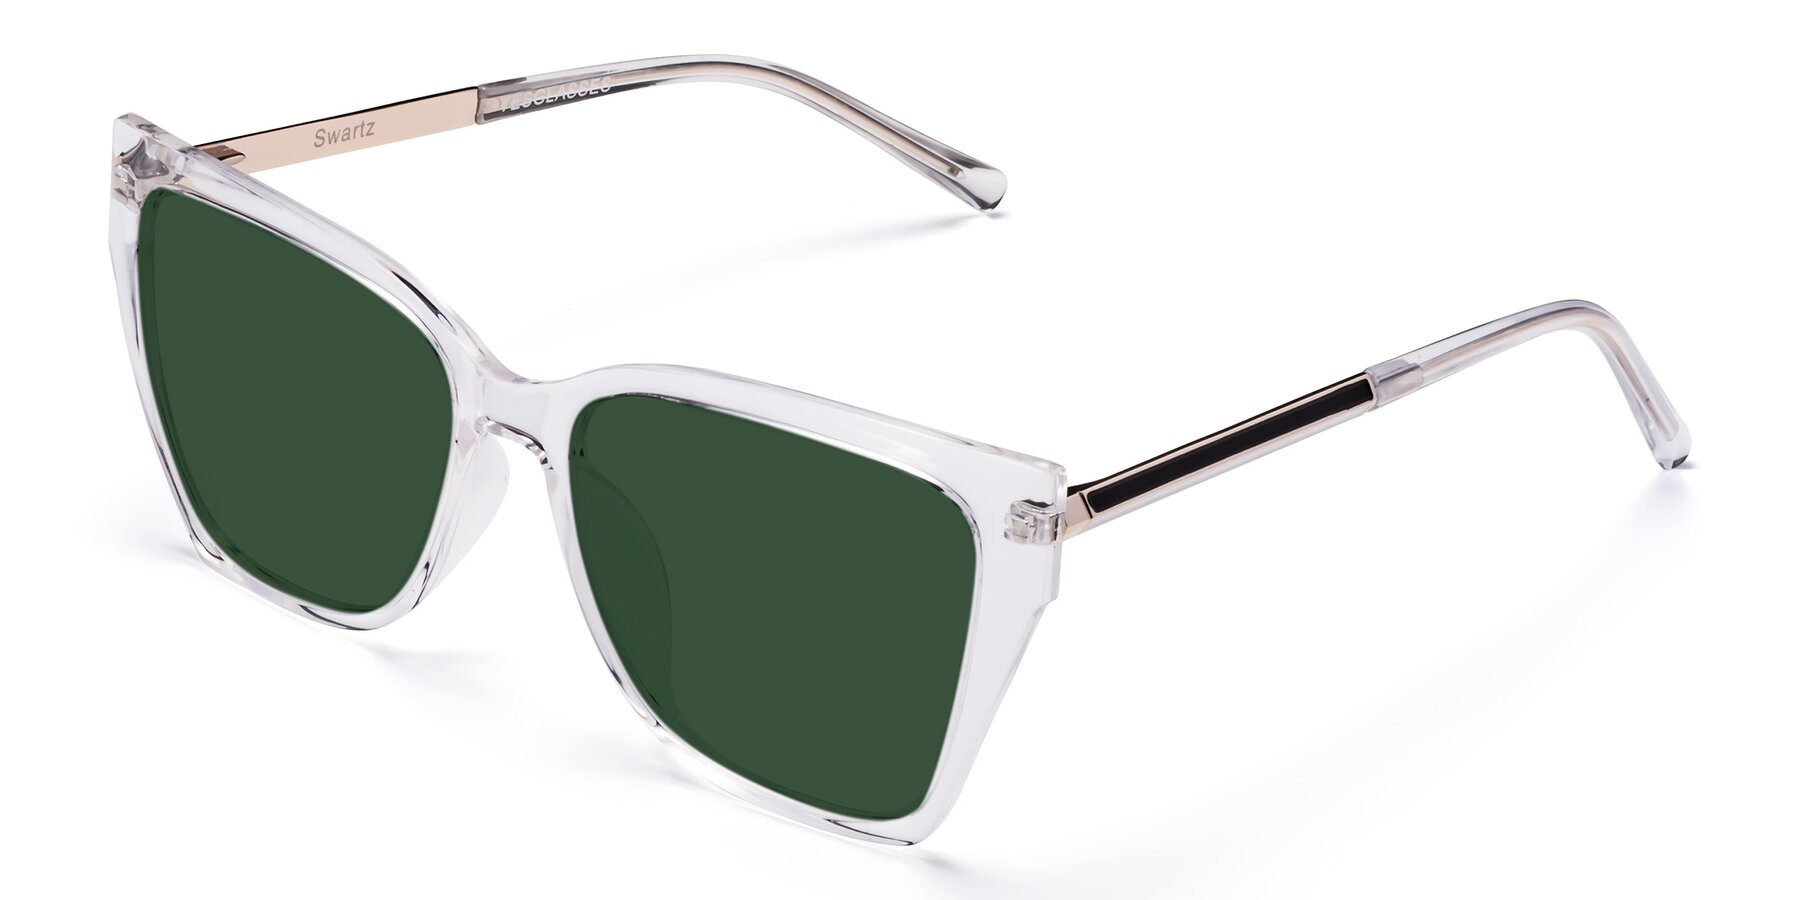 Angle of Swartz in Clear with Green Tinted Lenses